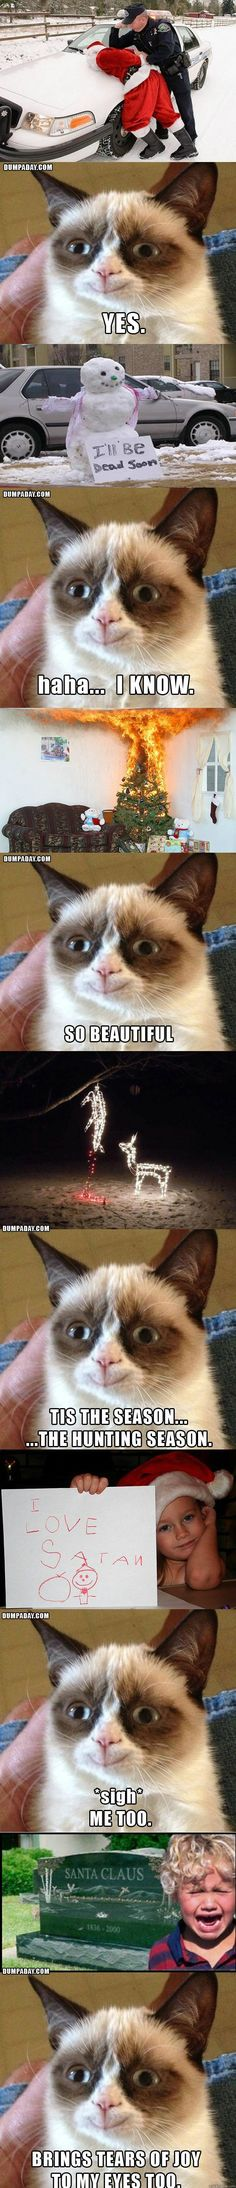 The Best Funny Pictures GIF and MEMES about Best grumpy cat pictures. Best MEME and GIFS about Best grumpy cat pictures and Funny Pictures Grumpy Cat Quotes, Funny Grumpy Cat Memes, Memes Funny Faces, Funny Animal Memes, Funny Cats, Funny Jokes, Funny Animals, Grumpy Kitty, Grumpy Car